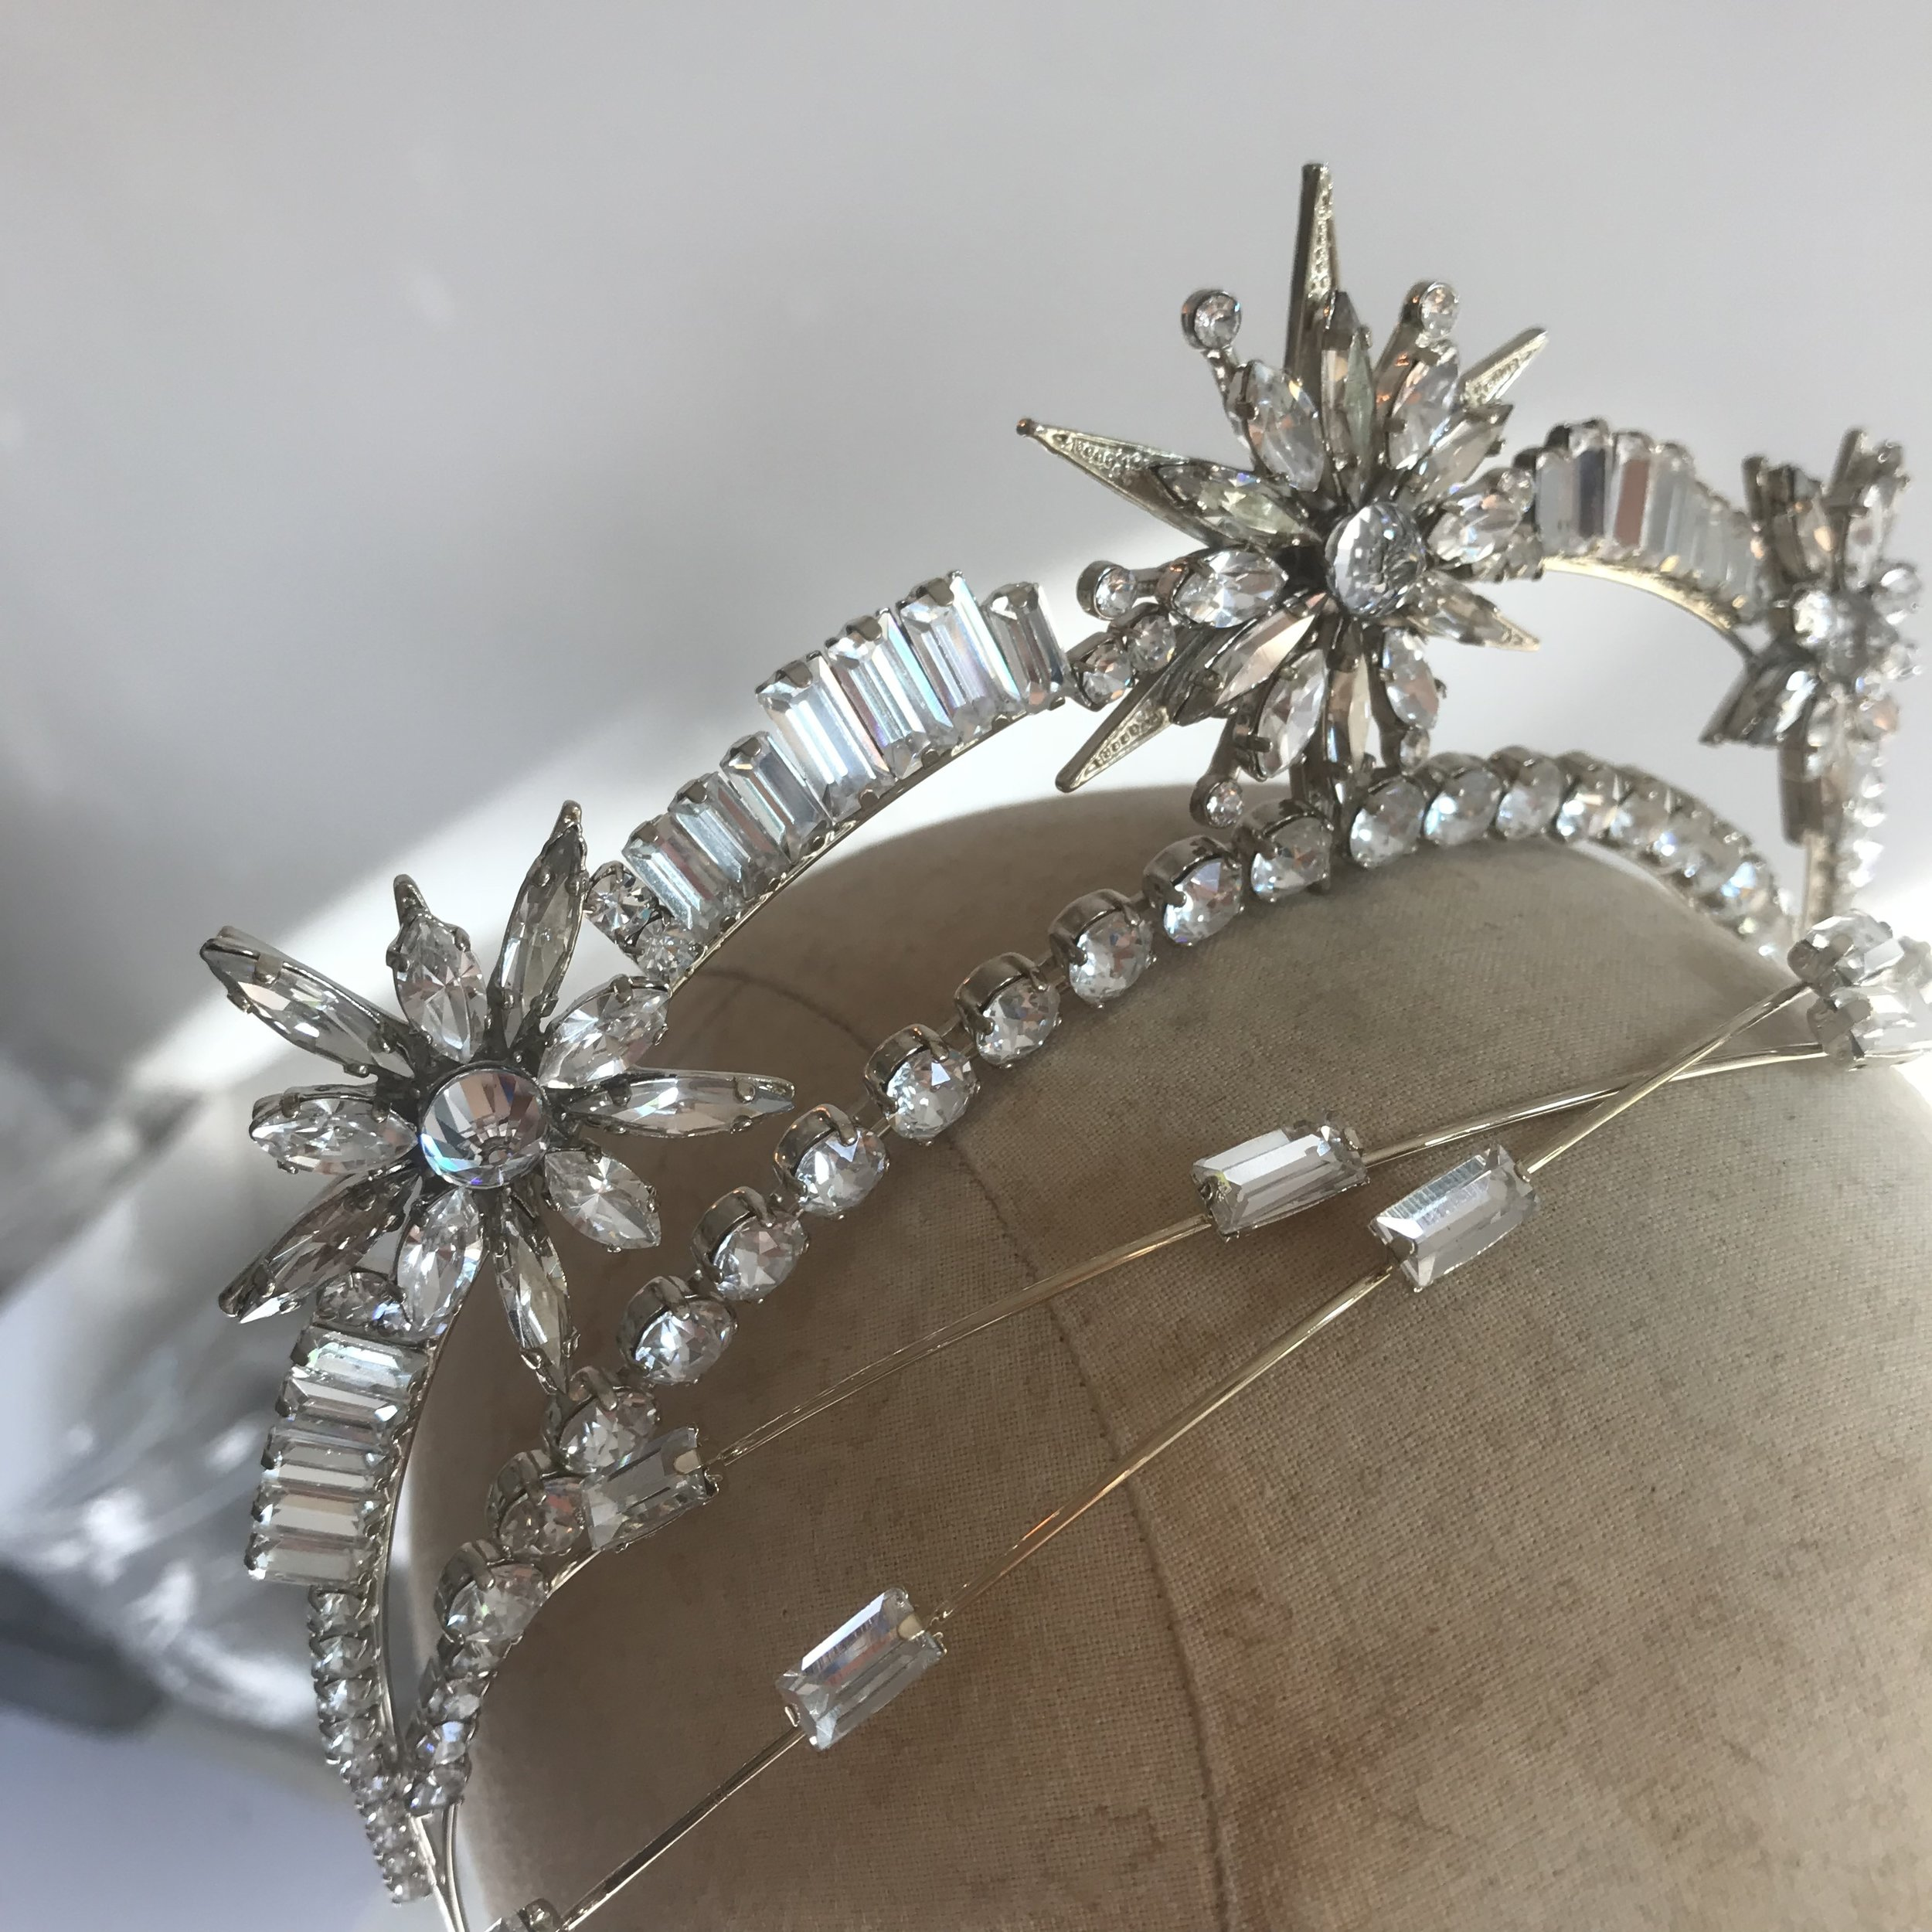 A finished Tilly Thomas Lux bespoke crown with Swarovski crystals